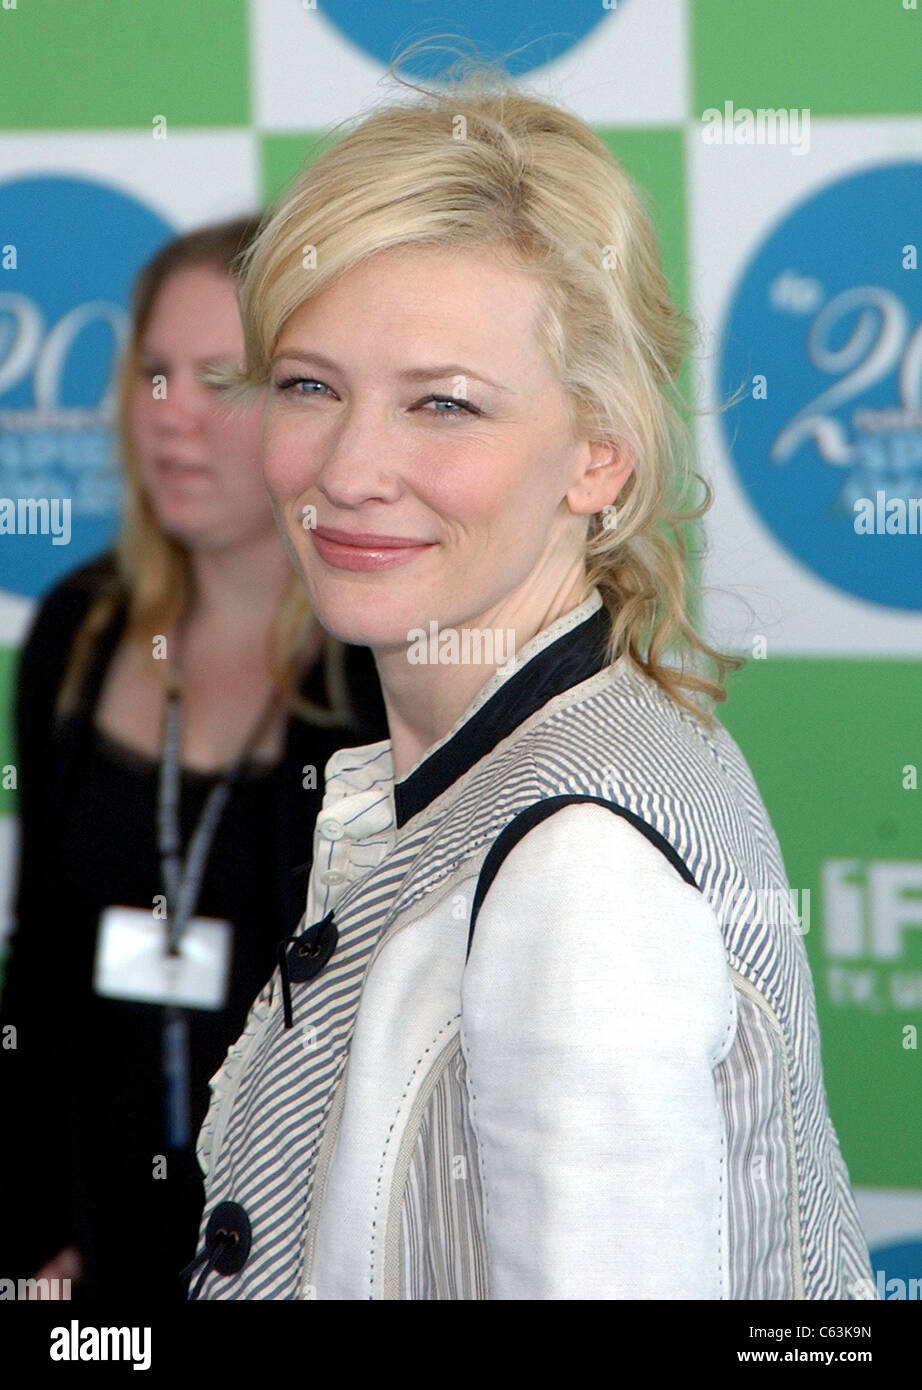 Cate Blanchett at arrivals for 20th IFP Independent Spirit Awards, Los Angeles, CA, Saturday, February 26, 2005. - Stock Image